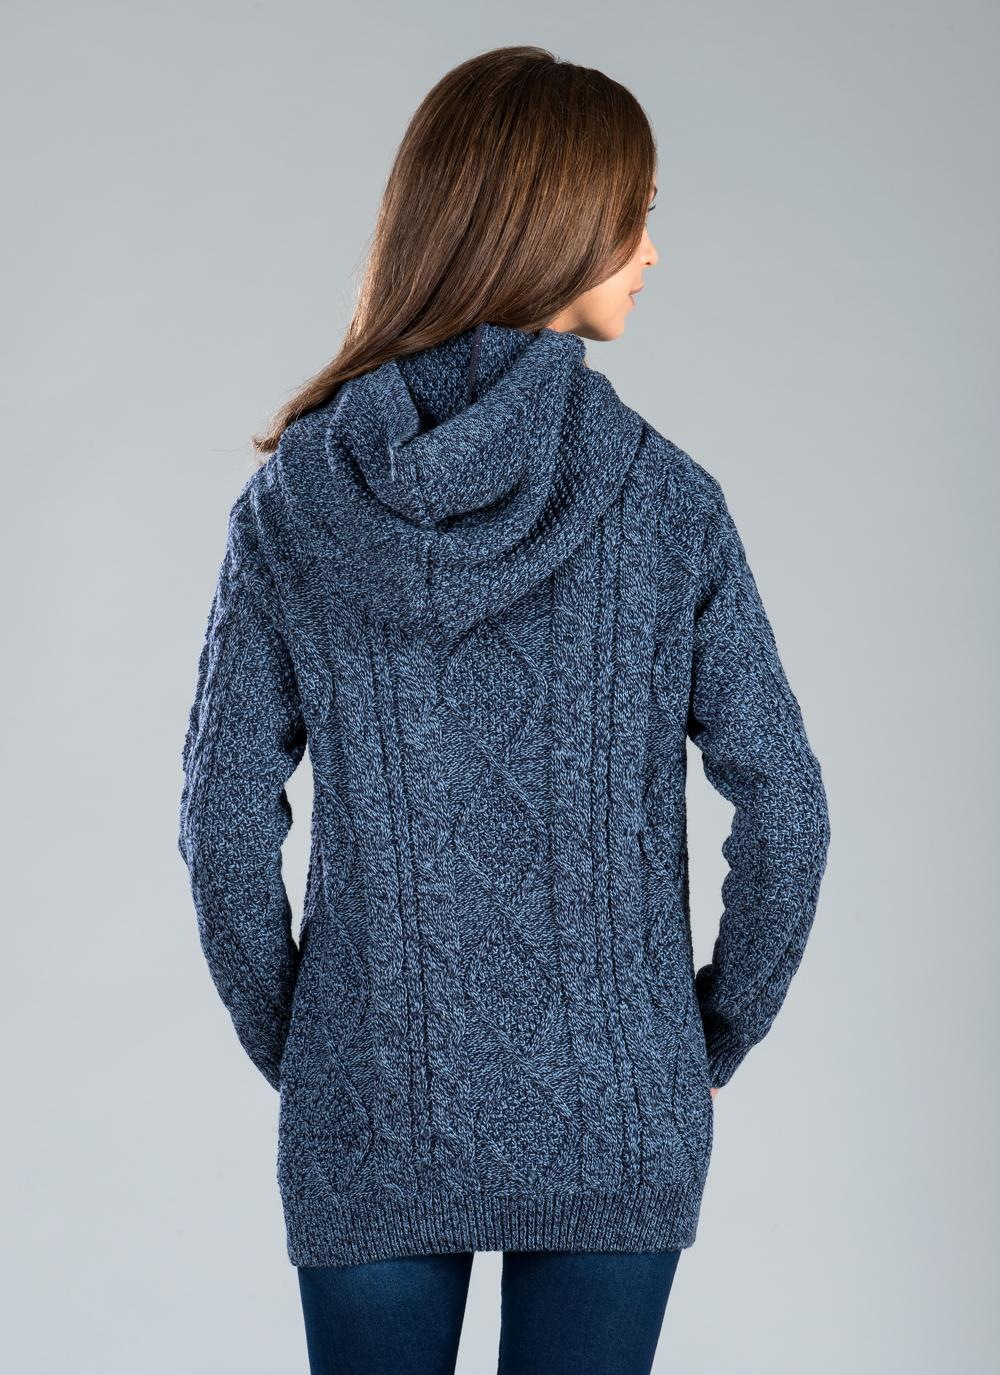 Womens Blue Sweater